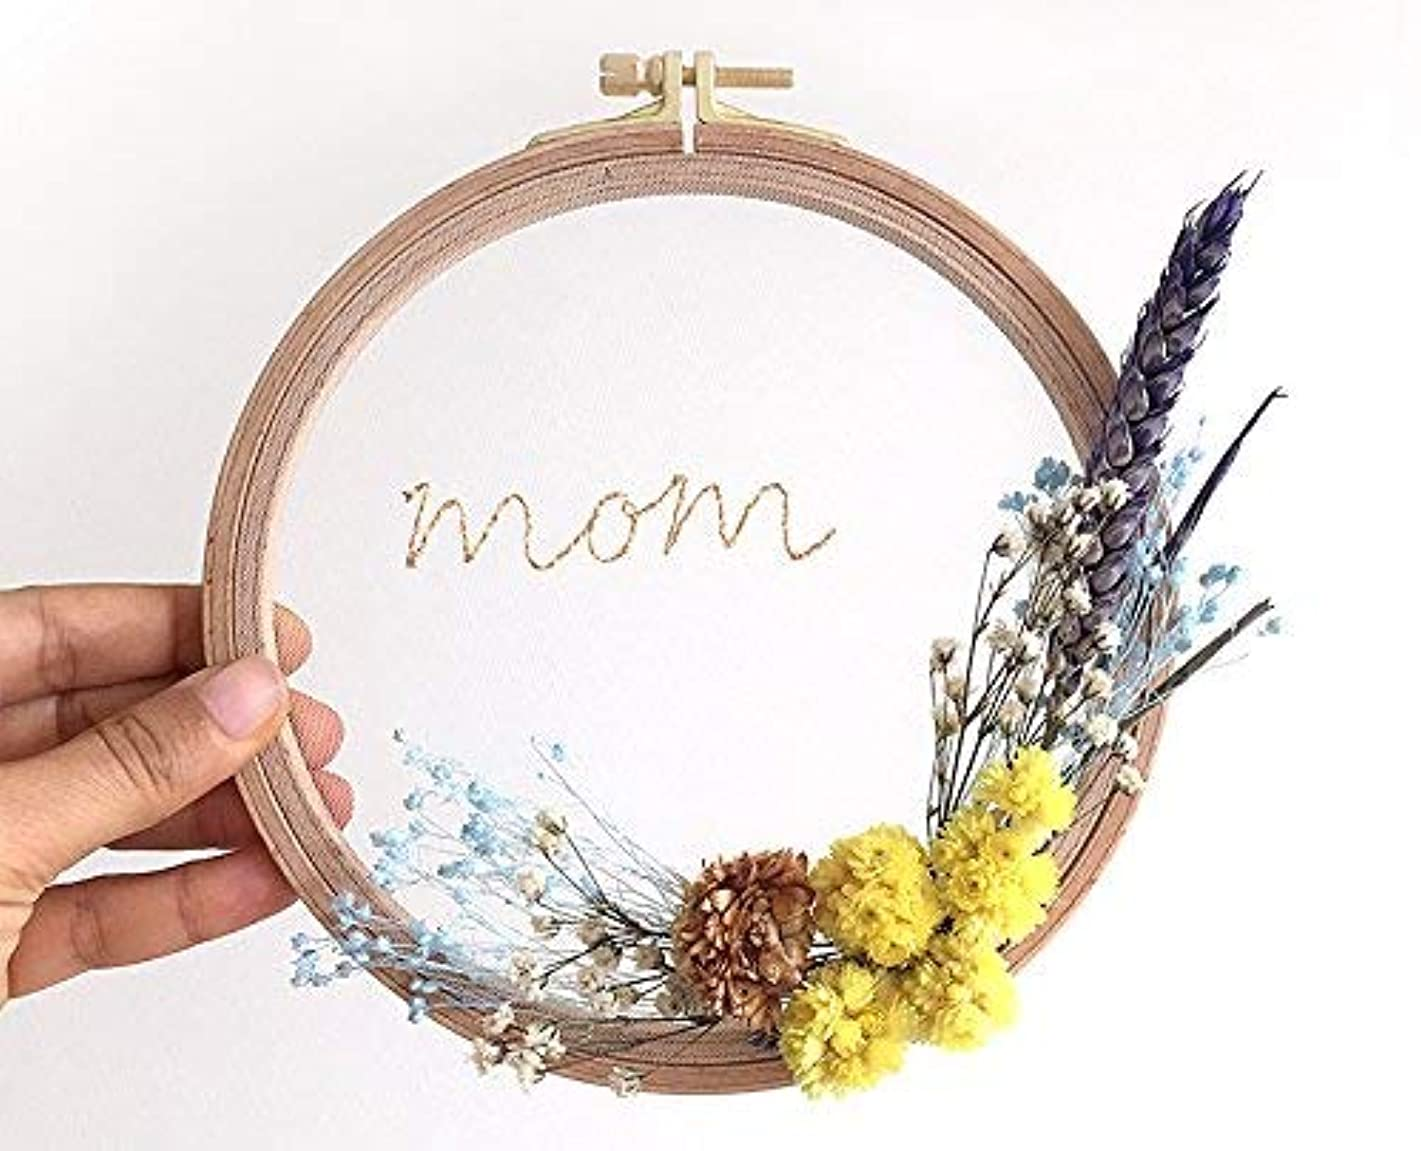 Mothers Day Personalized, Mom Gift, Embroidery Hoop, Flower Wreath, Hoop Art, Mother's Day Gift, Gift For Grandma, Mama Gift Idea, Plant Mom